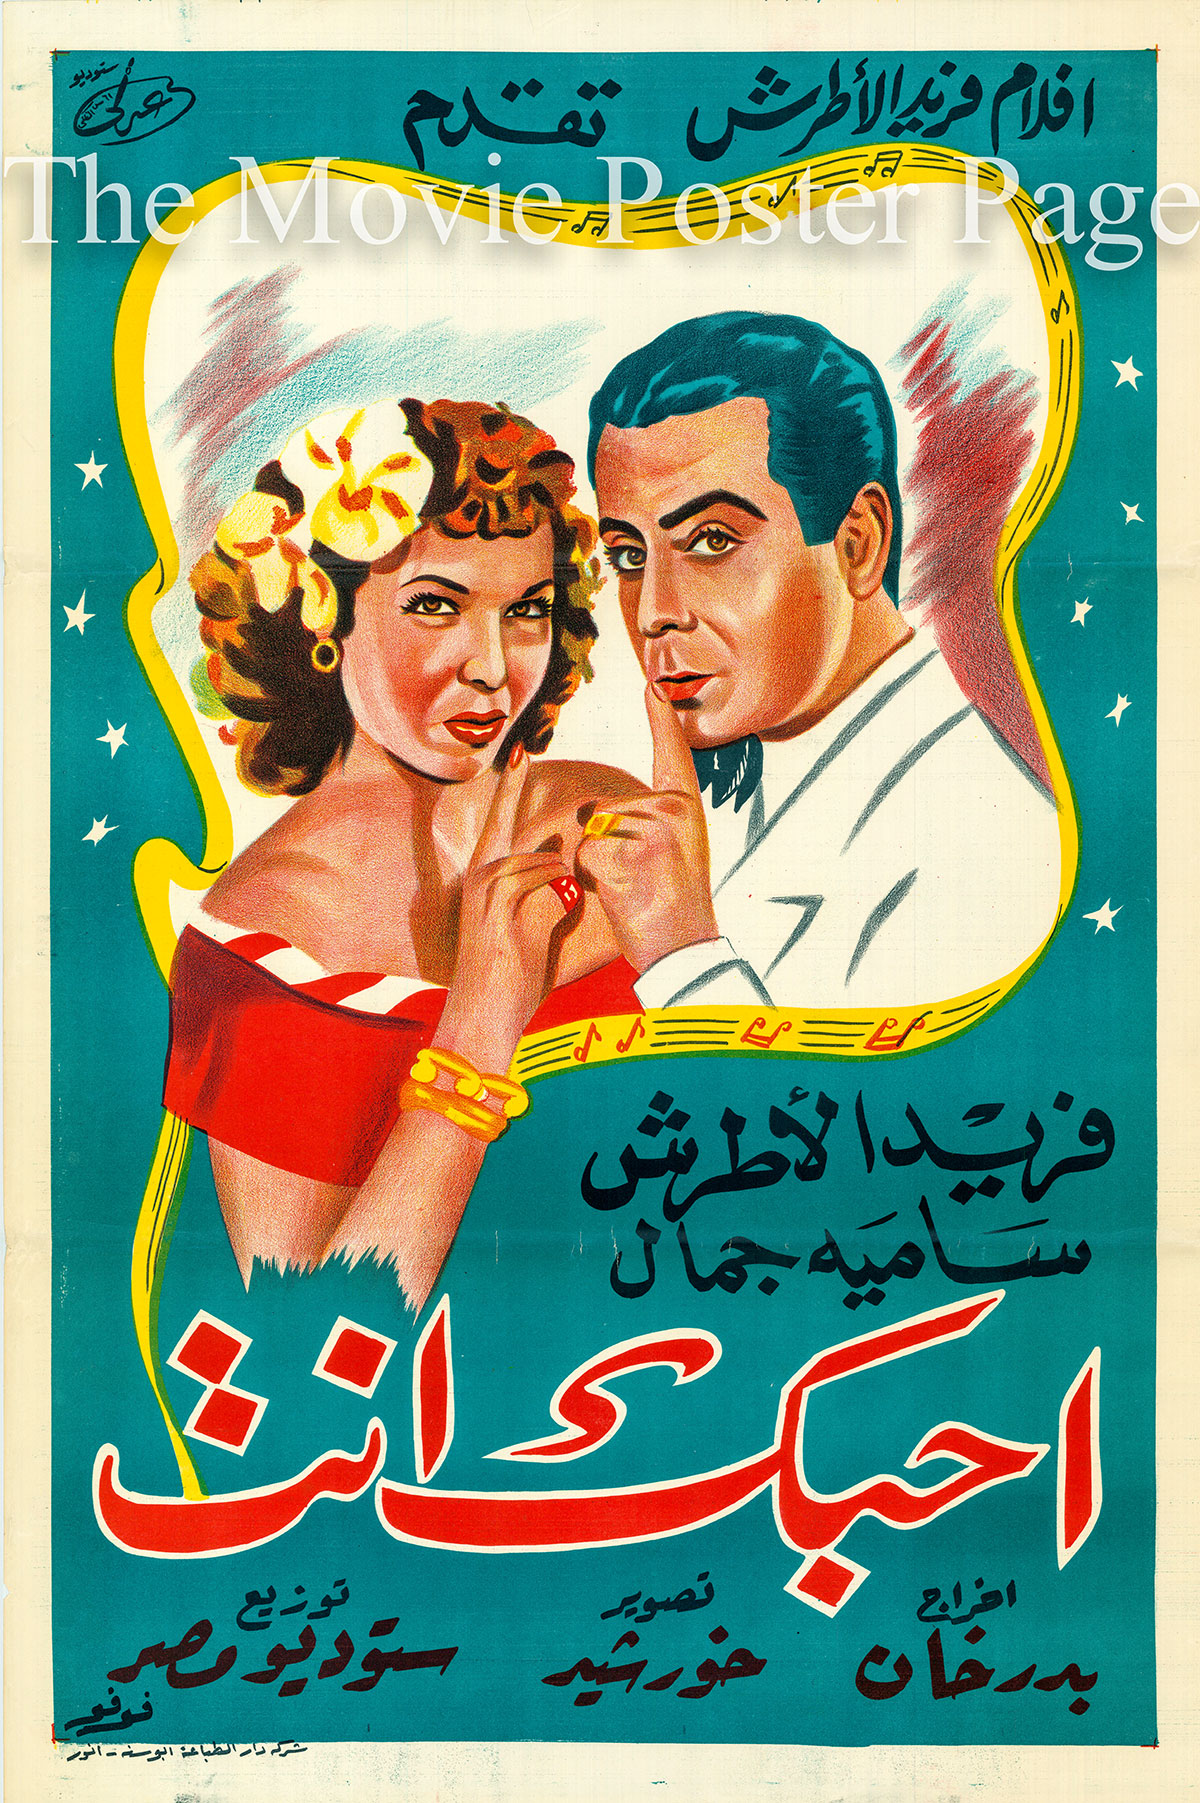 Pictured is an Egyptian promotional poster for the 1949 Ahmed Badrakhan film I Love You Only starring Farid Al Atrache.